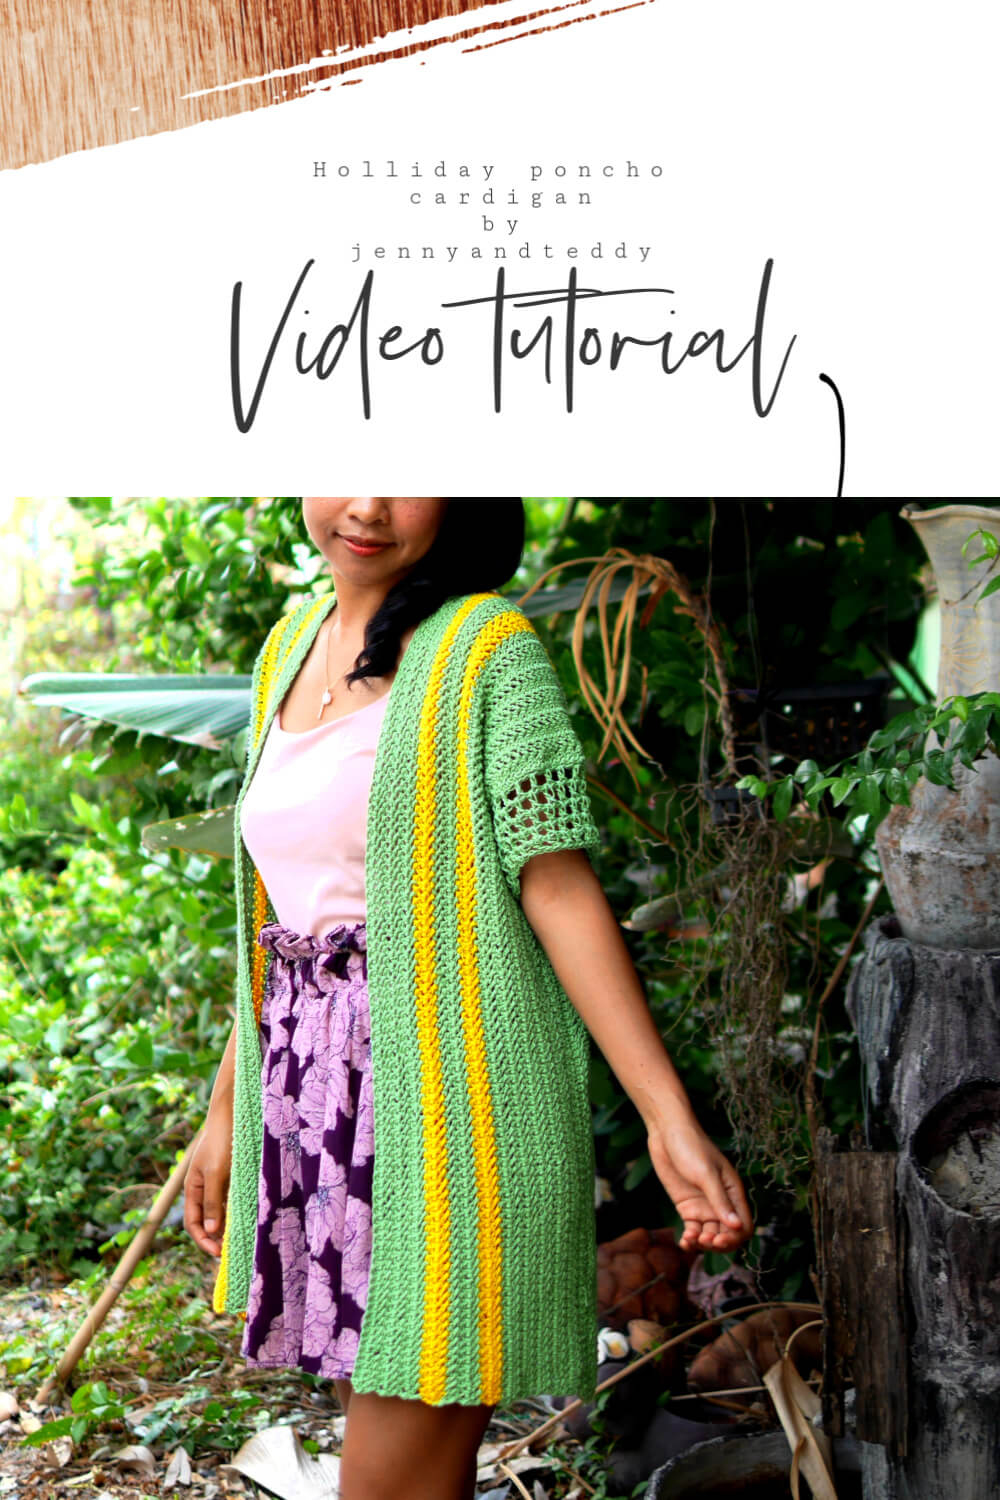 easy crochet how to poncho cardigan free pattern